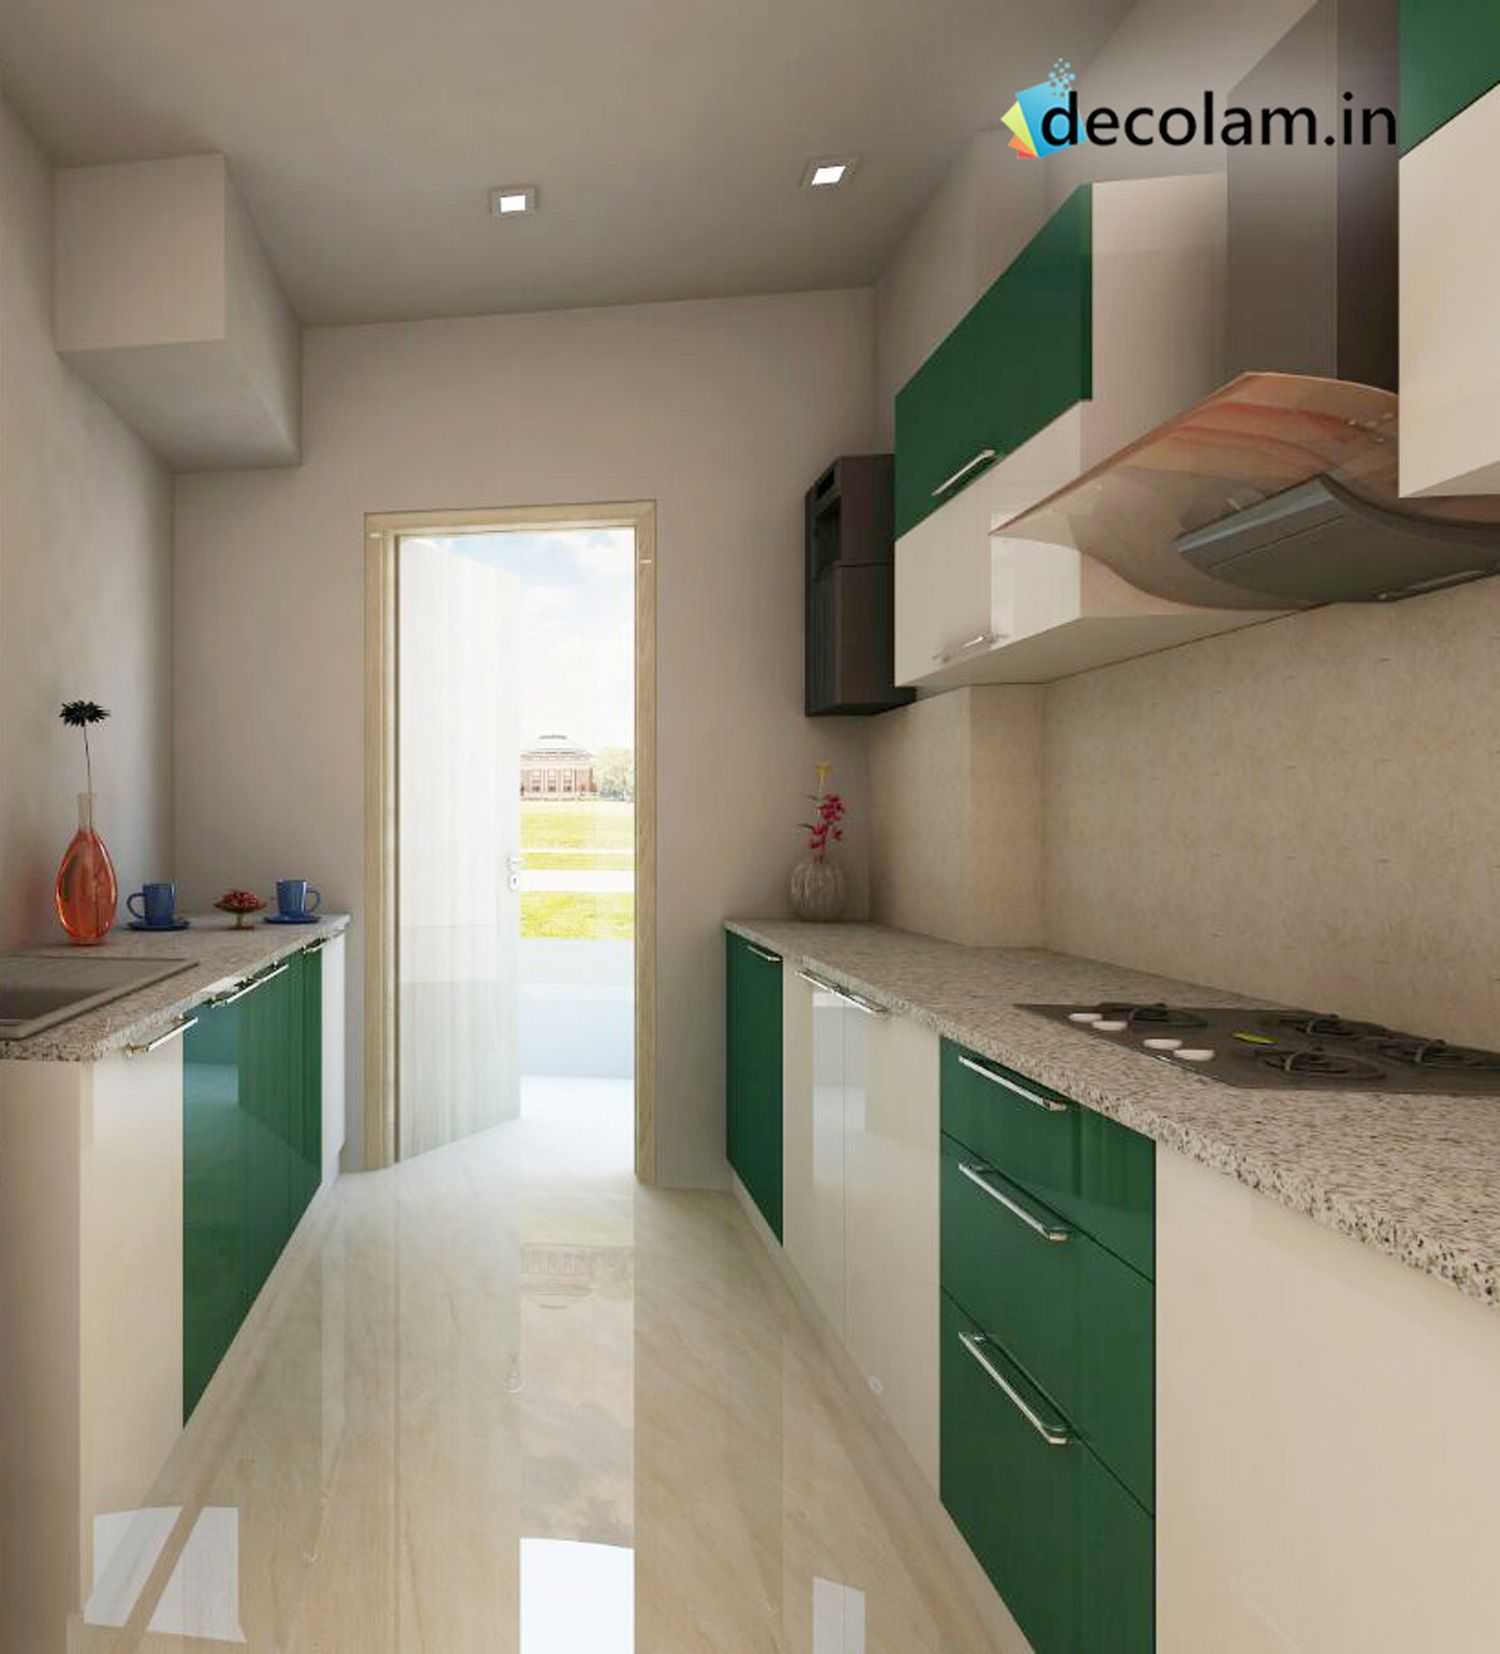 Modern Parallel Kitchen That Will Add Glam To Your Home From